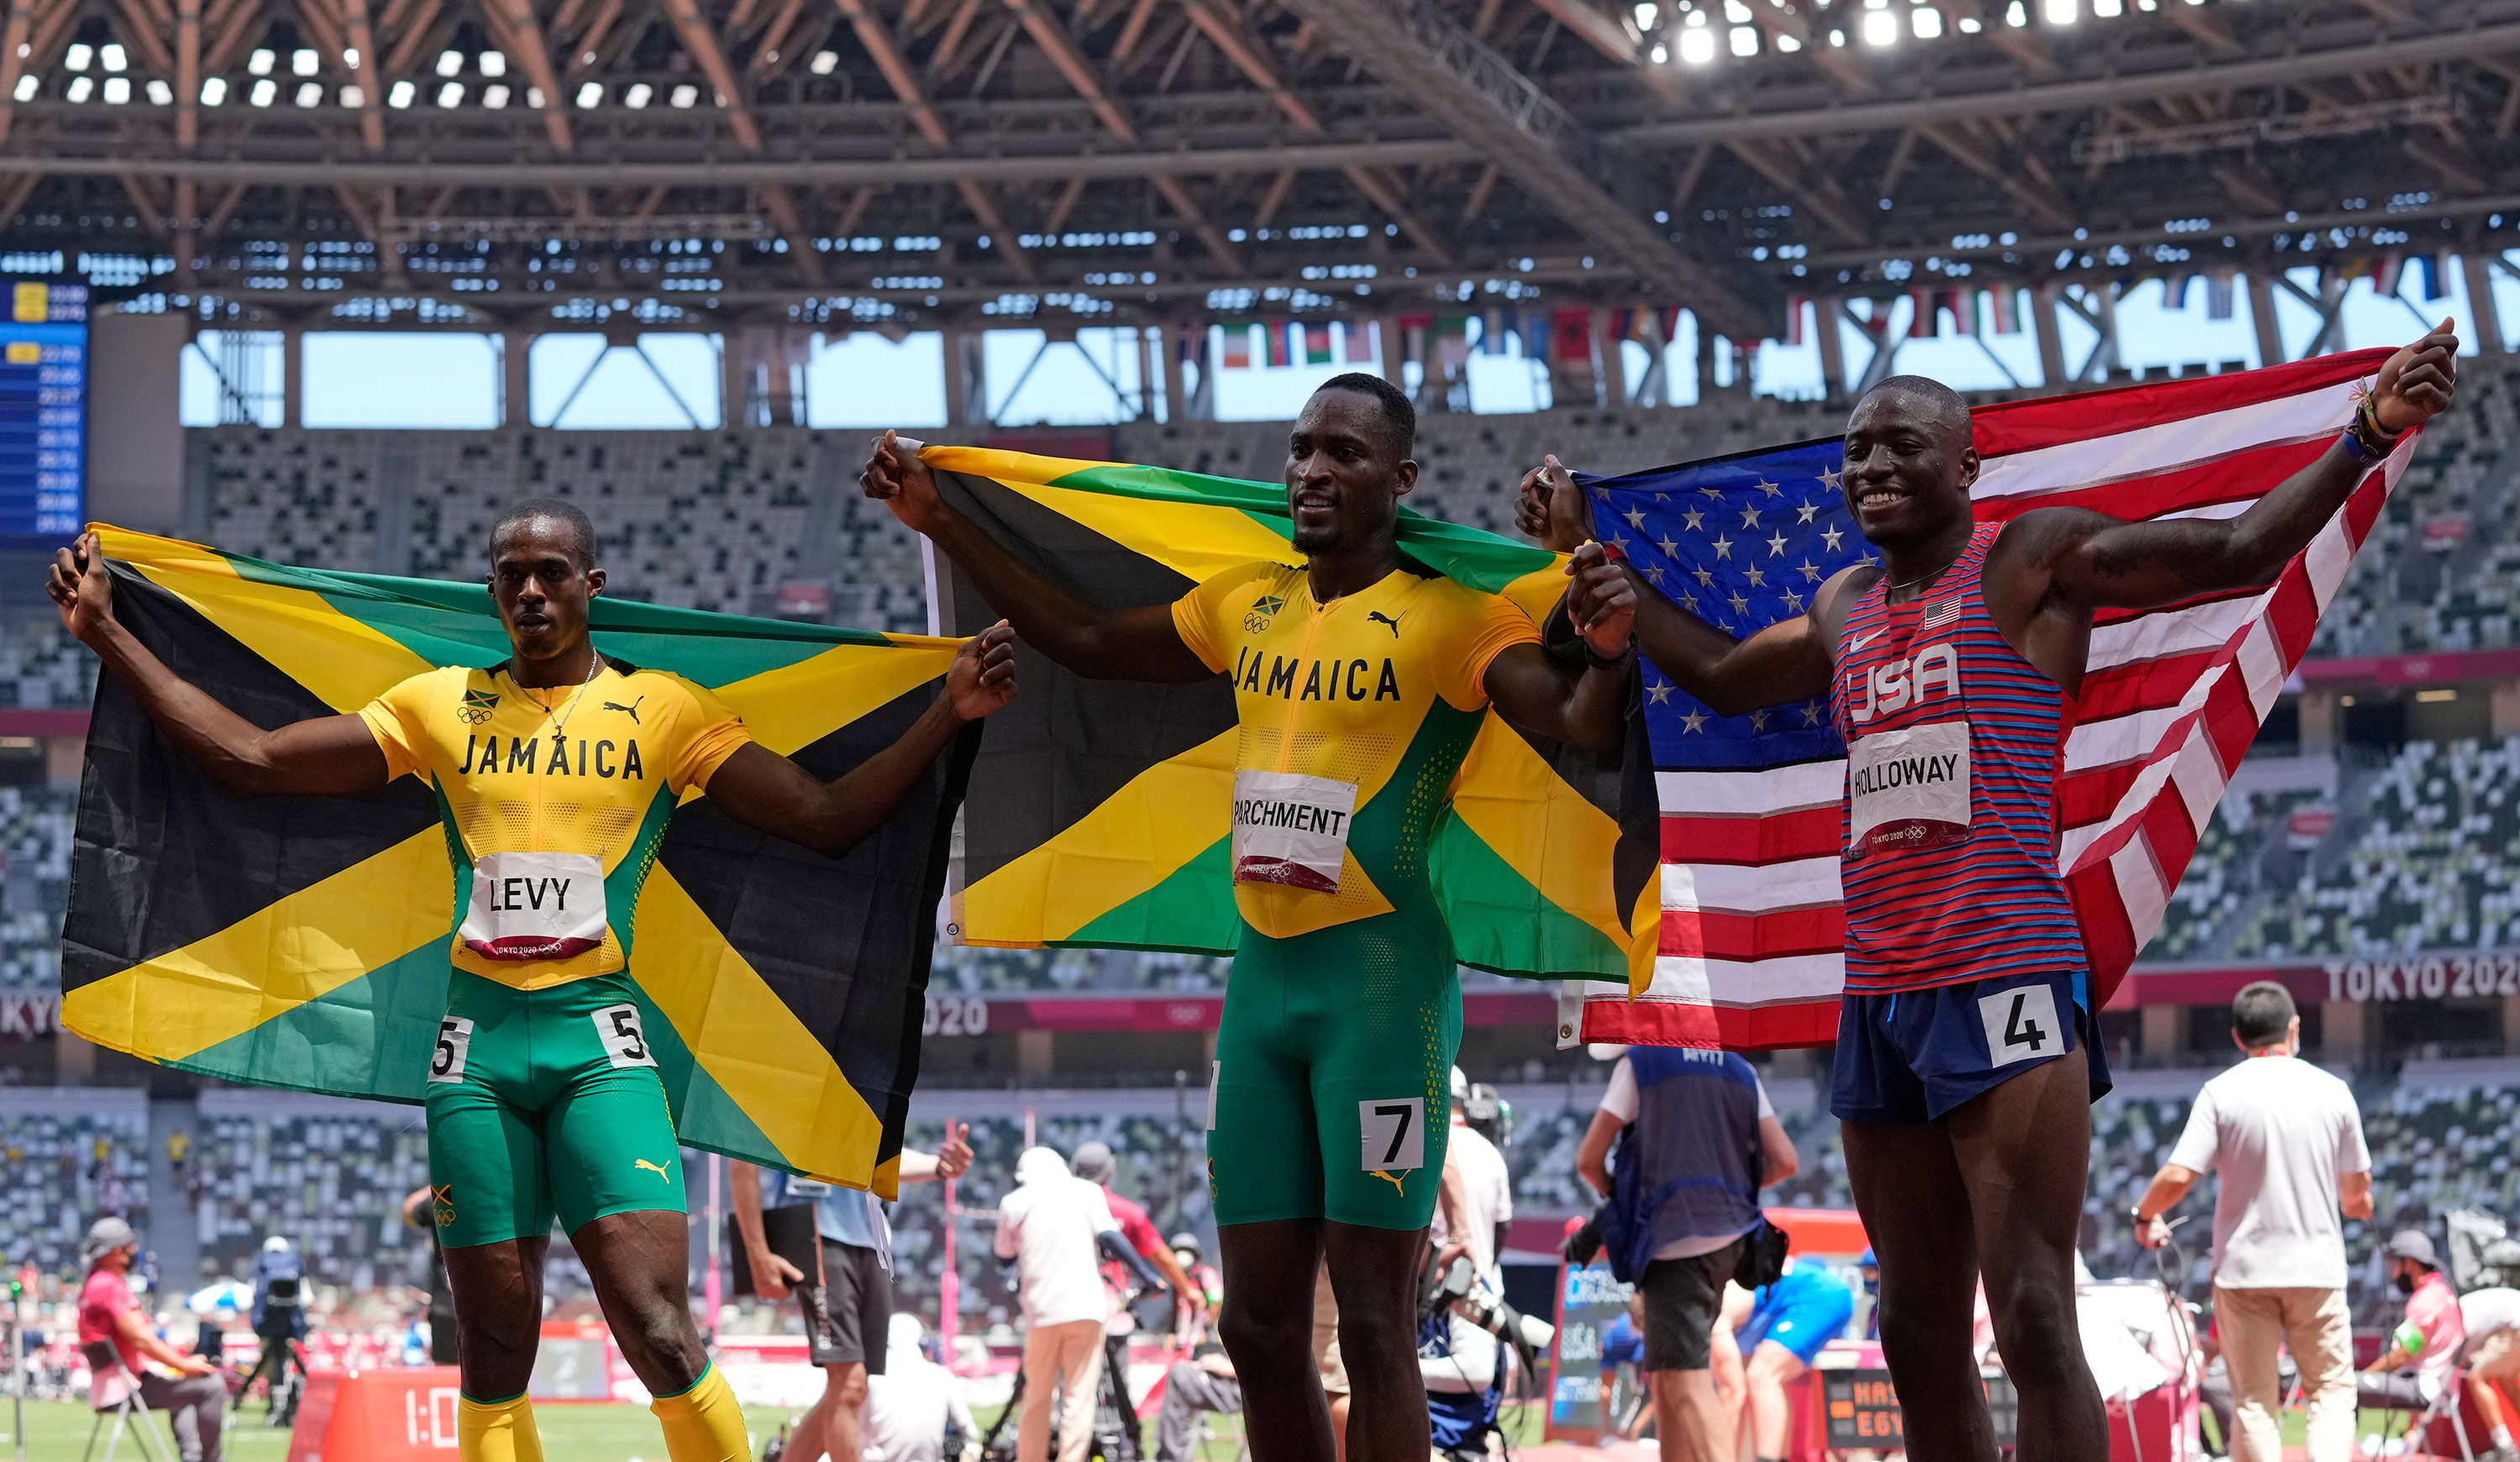 Jamaica's Hansle Parchment, center, celebrates winning the gold medal in the 110-meter hurdles alongside silver medalist Grant Holloway of the United States and bronze medalist Ronald Levy of Jamaica on August 5.